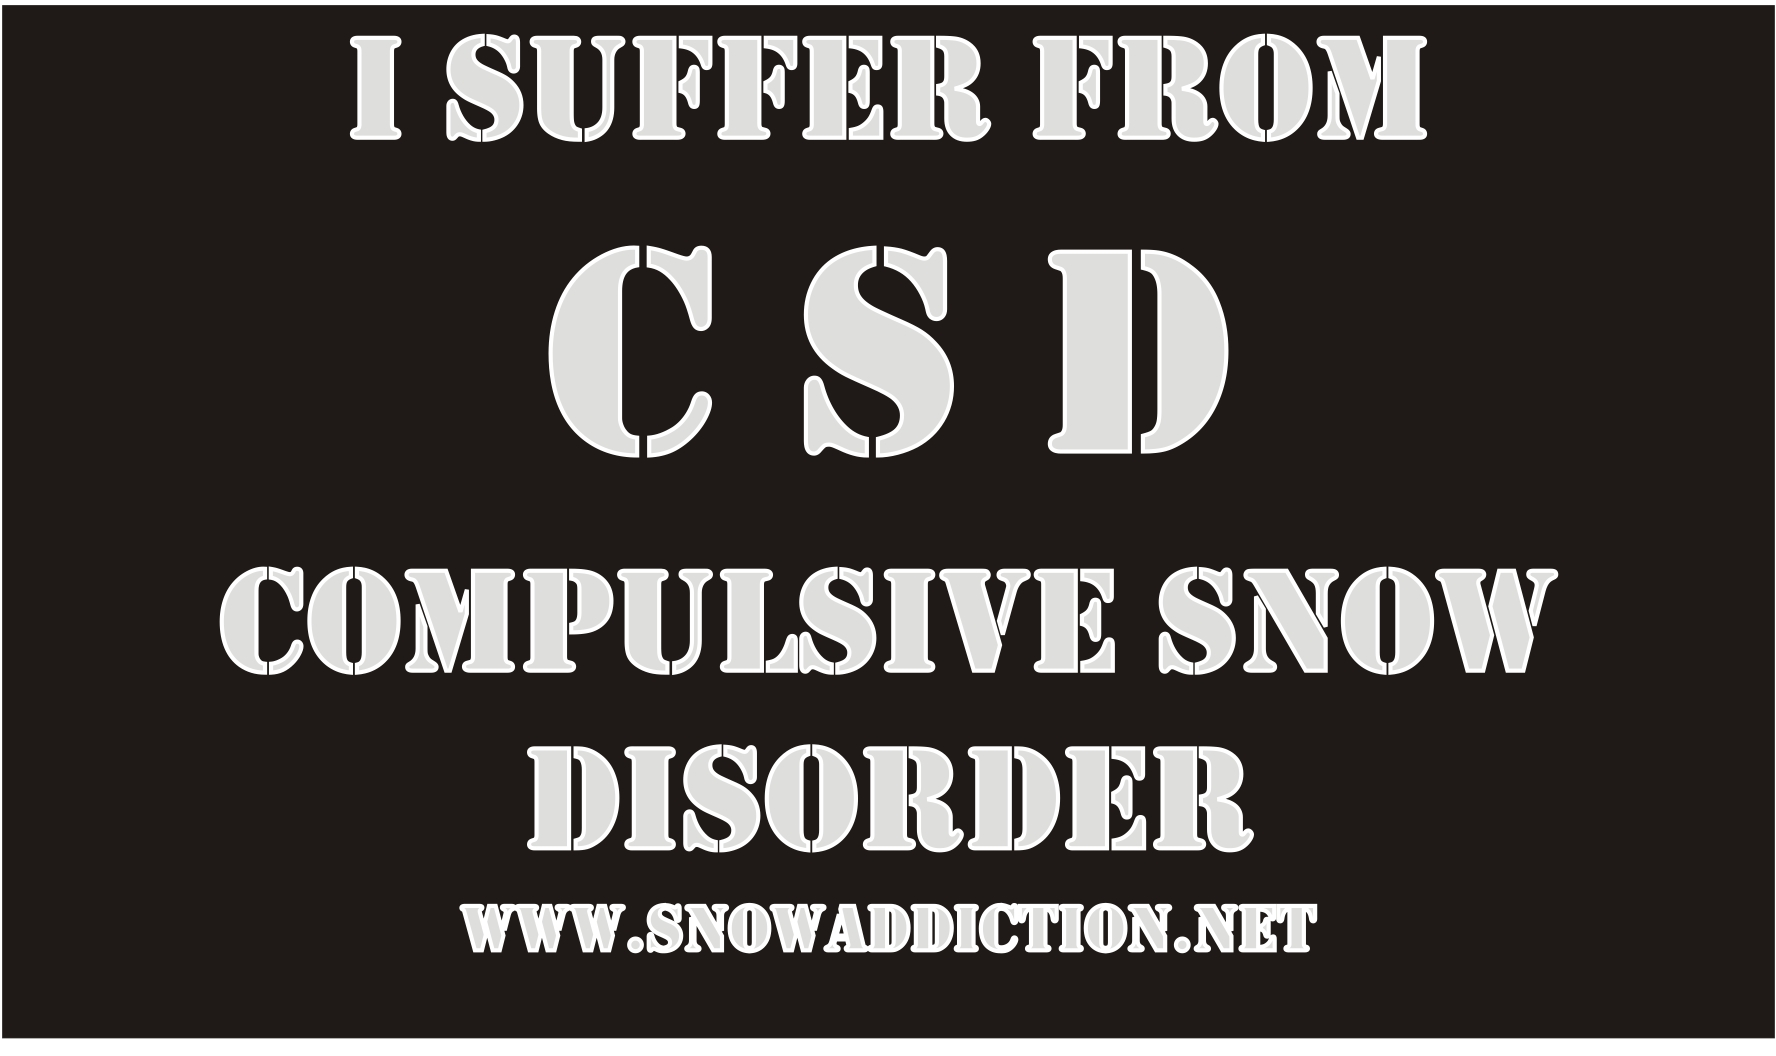 click to purchase a snow addiction tshirt/hoody